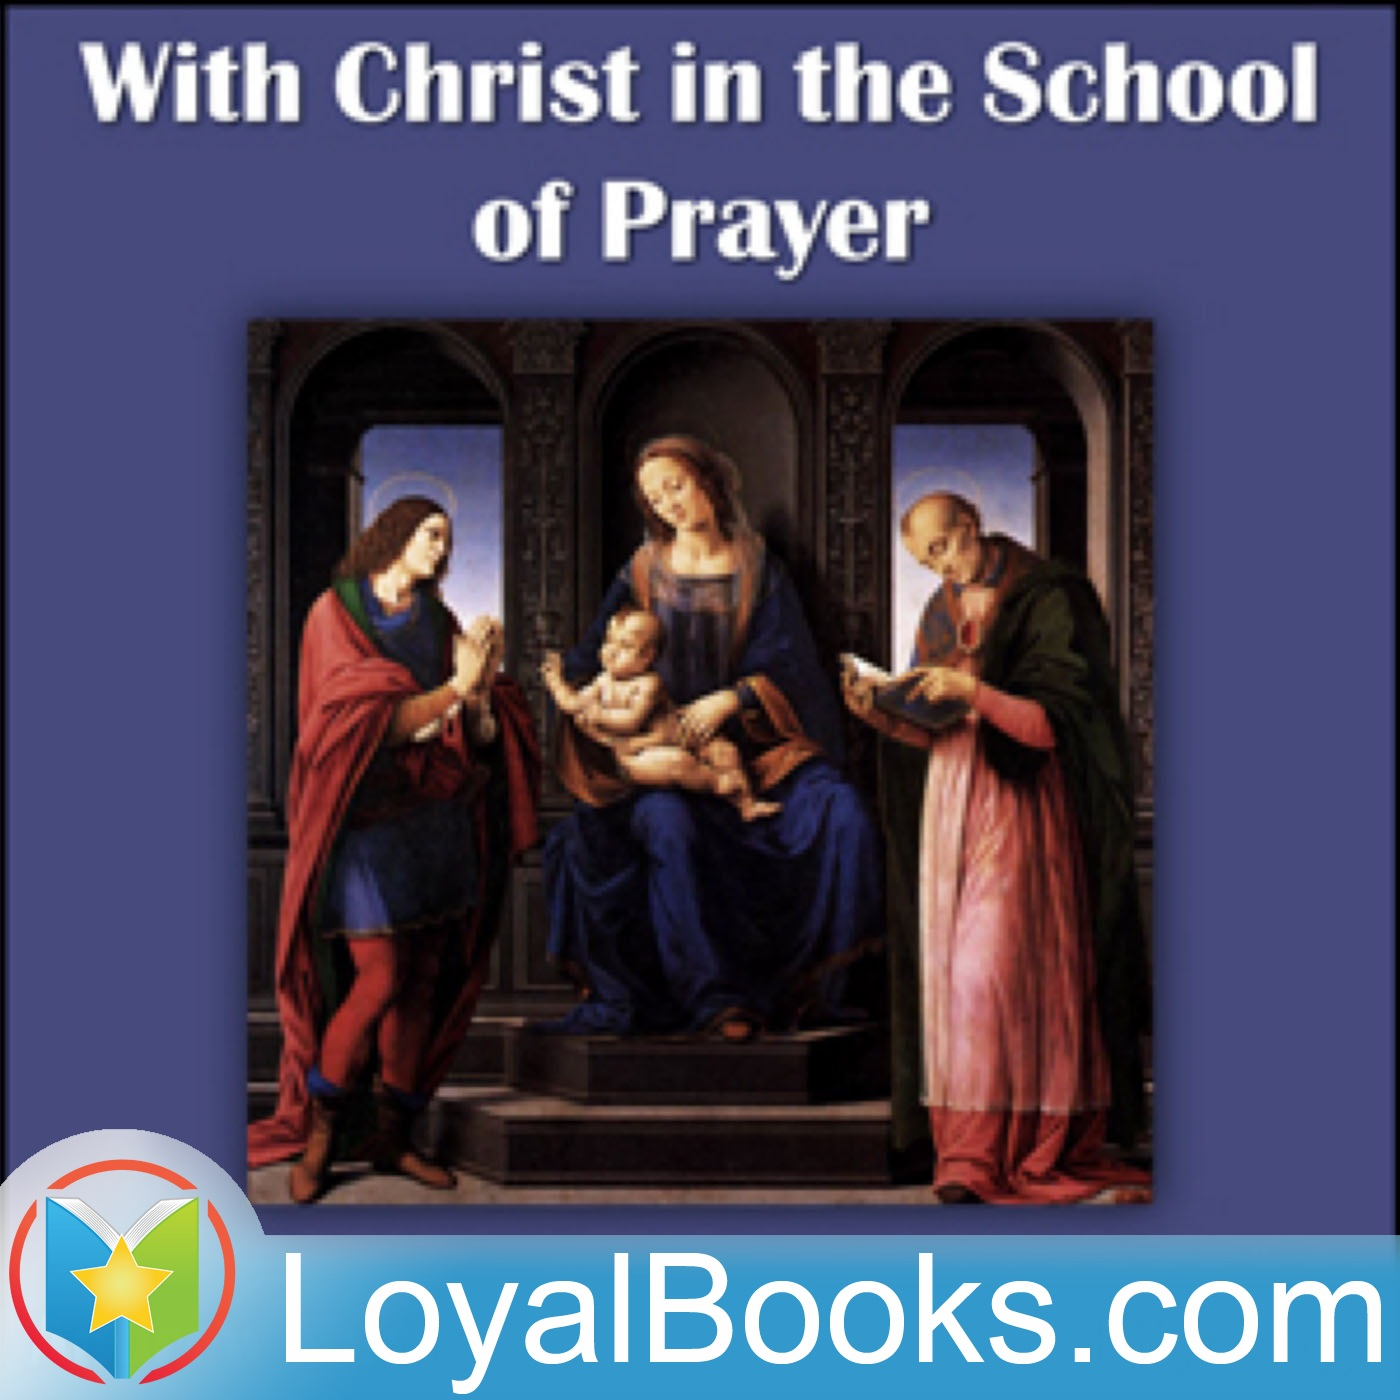 <![CDATA[With Christ in the School of Prayer by Andrew Murray]]>